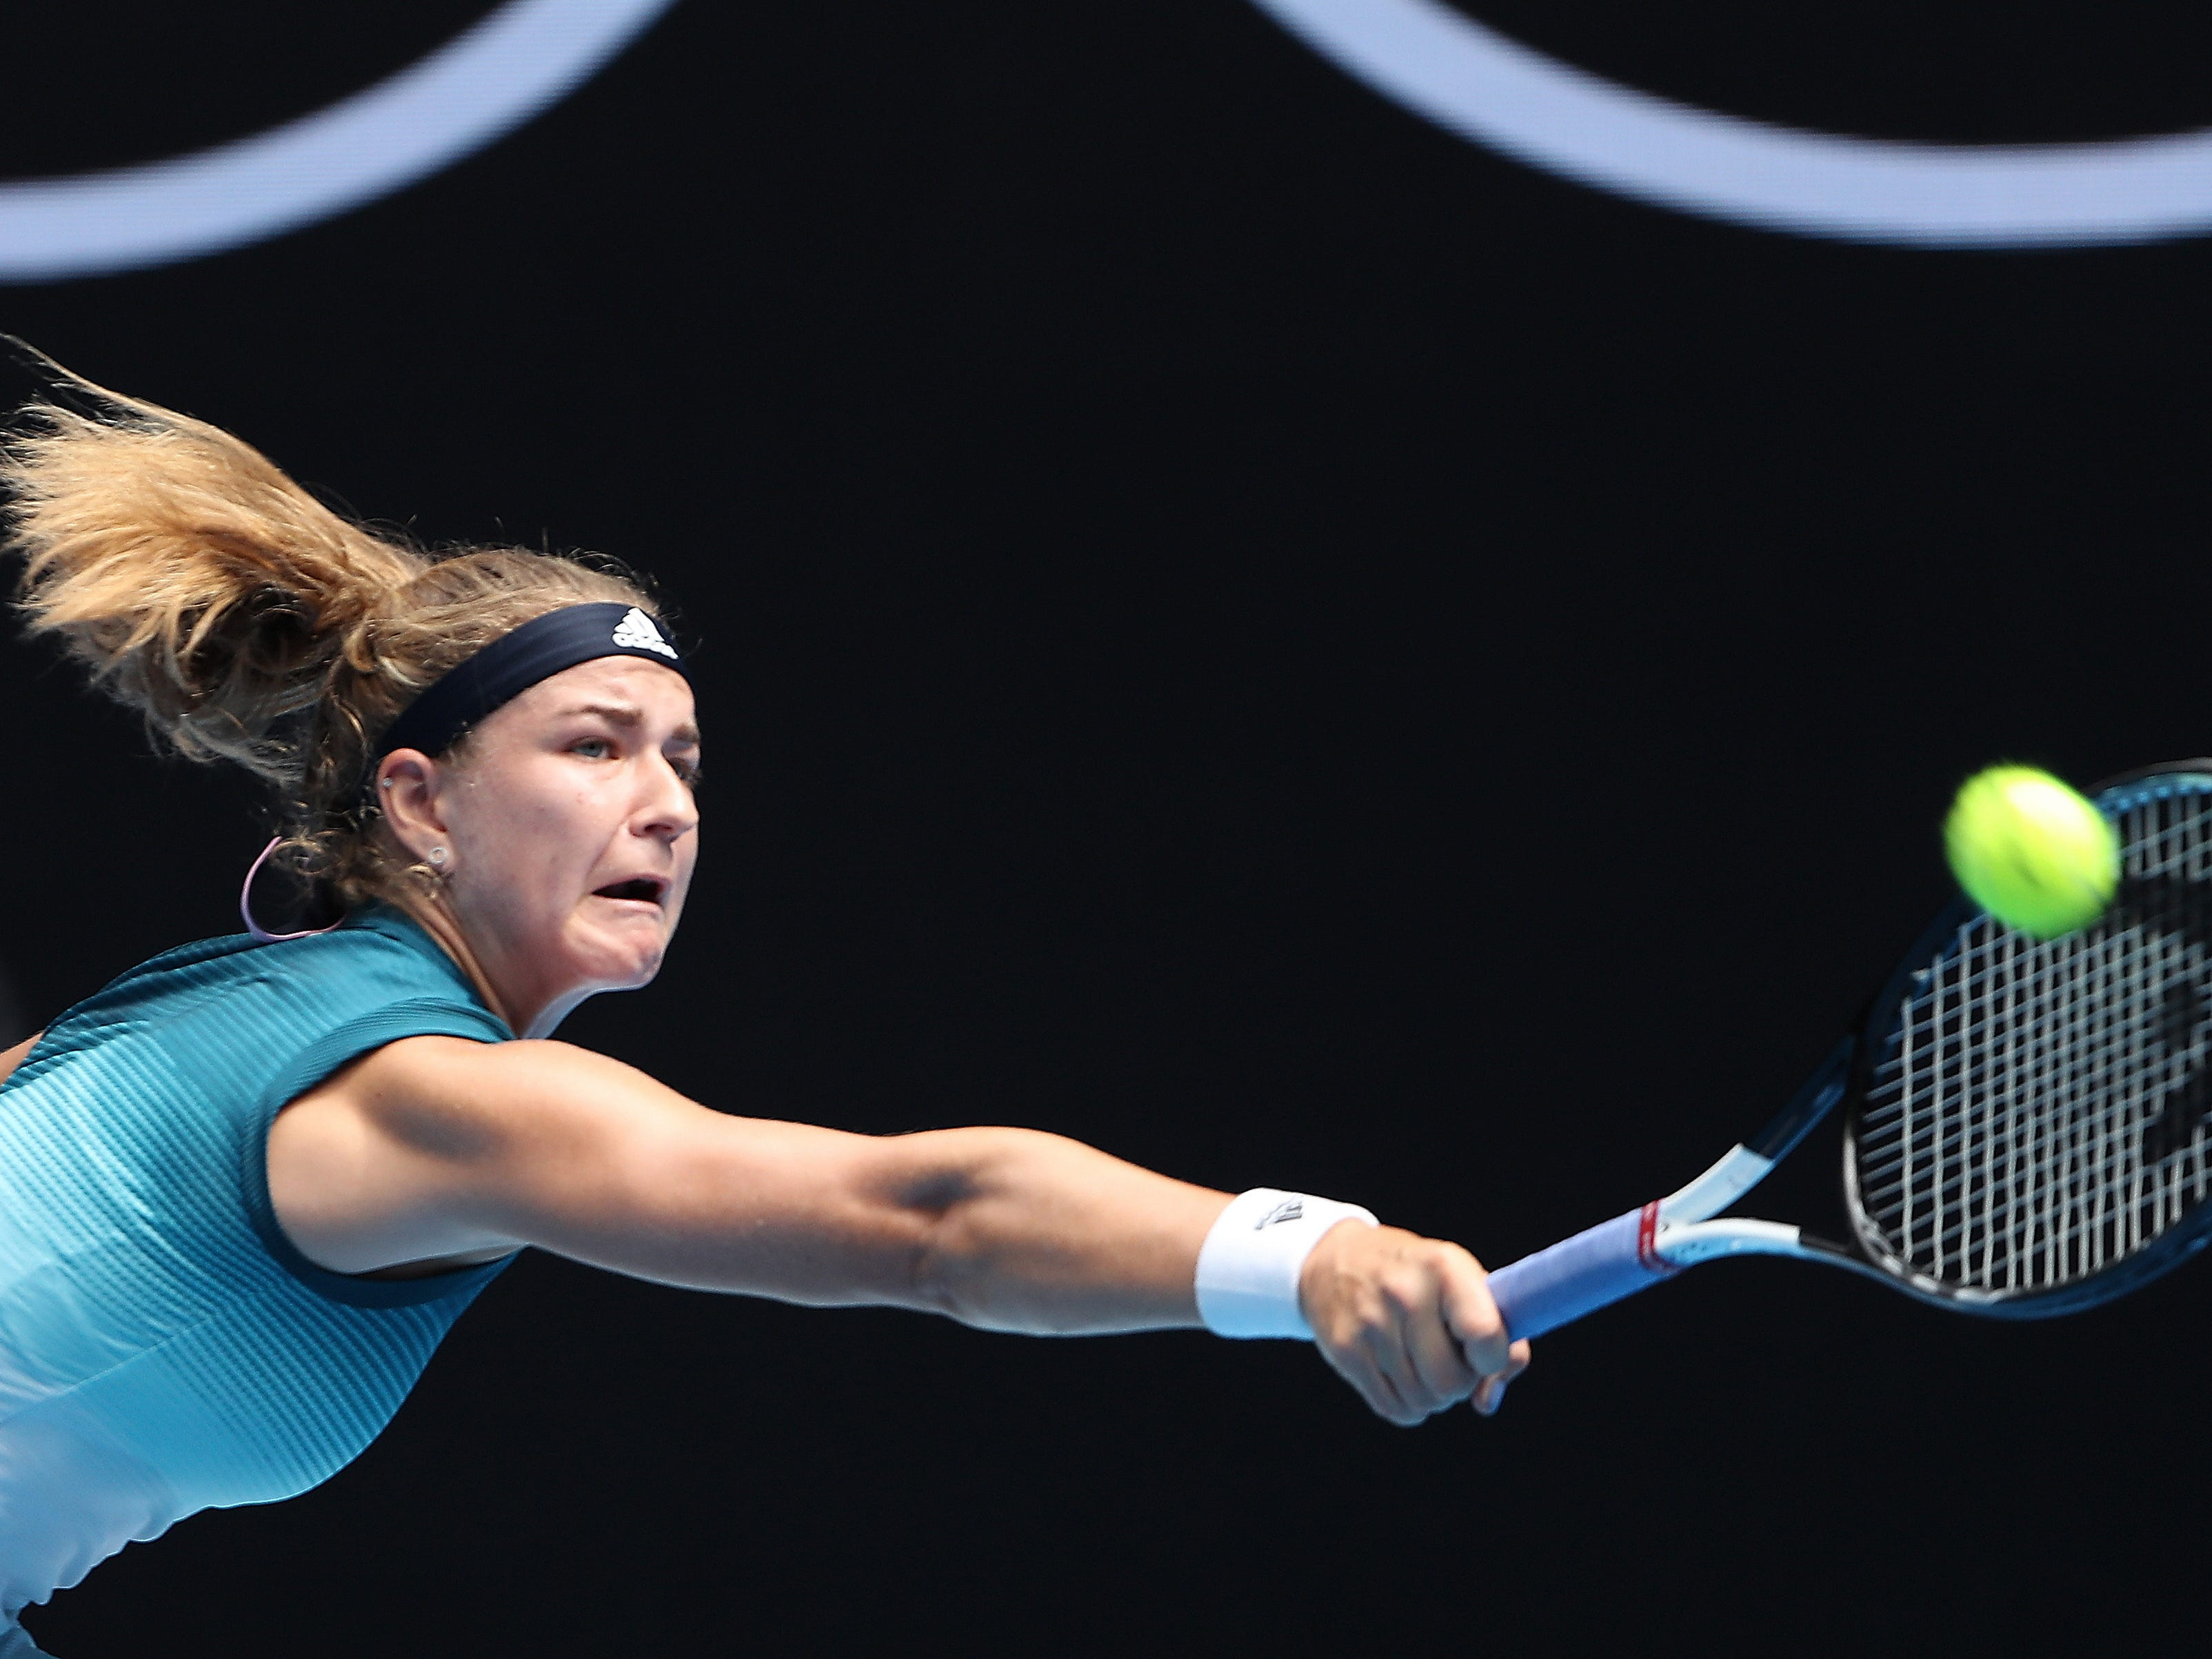 Karolina Muchova of the Czech Republic in action against Karolina Pliskova of the Czech Republic during their women's singles match at the Australian Open on Jan. 15.